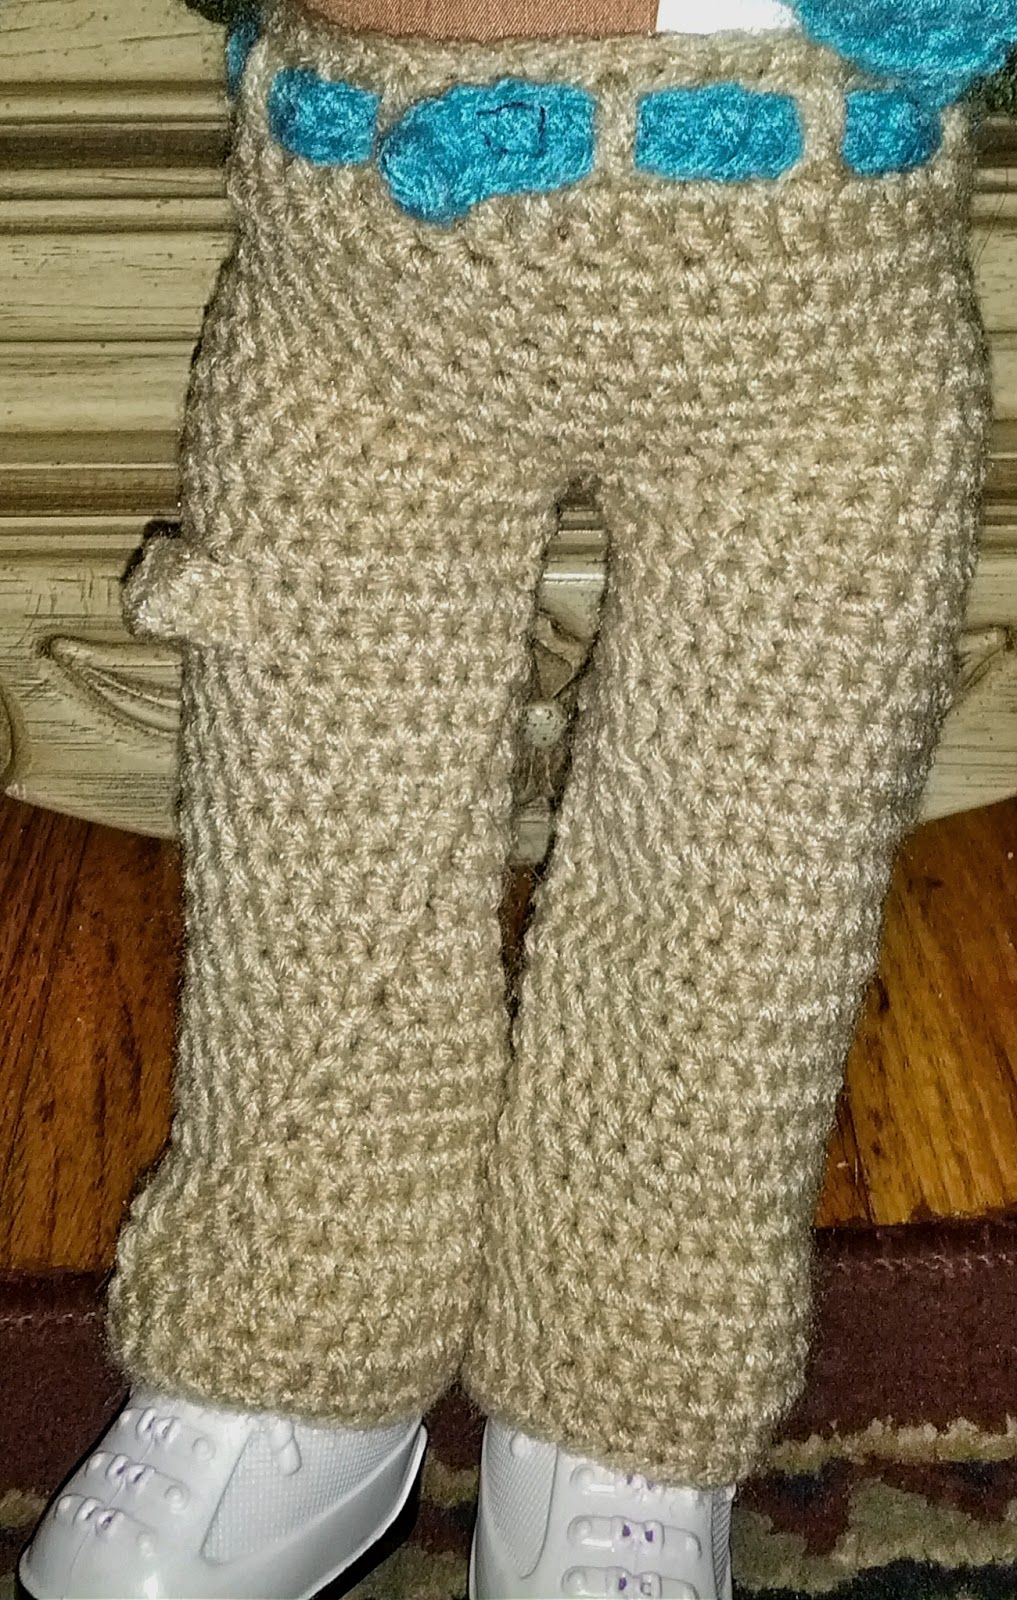 Raising 4 dinosaurs free pattern carpenter pants for an american this is a free crochet pattern for the american girl or 18 inch doll bankloansurffo Choice Image